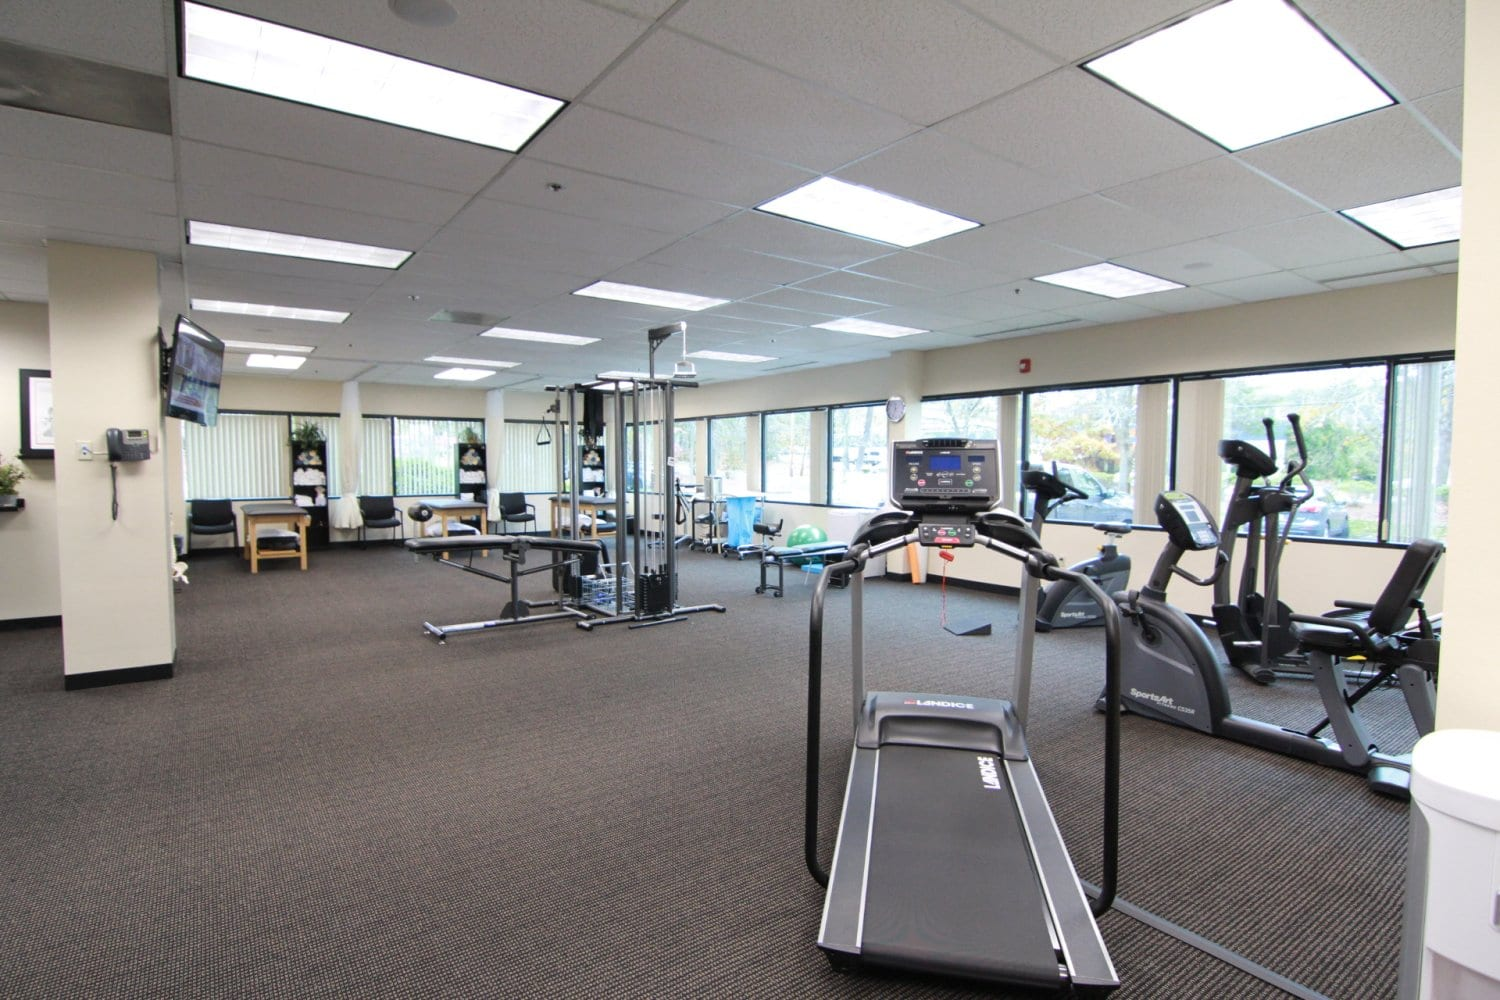 Here is an image of the interior of our physical therapy clinic in Billerica, Massachusetts.